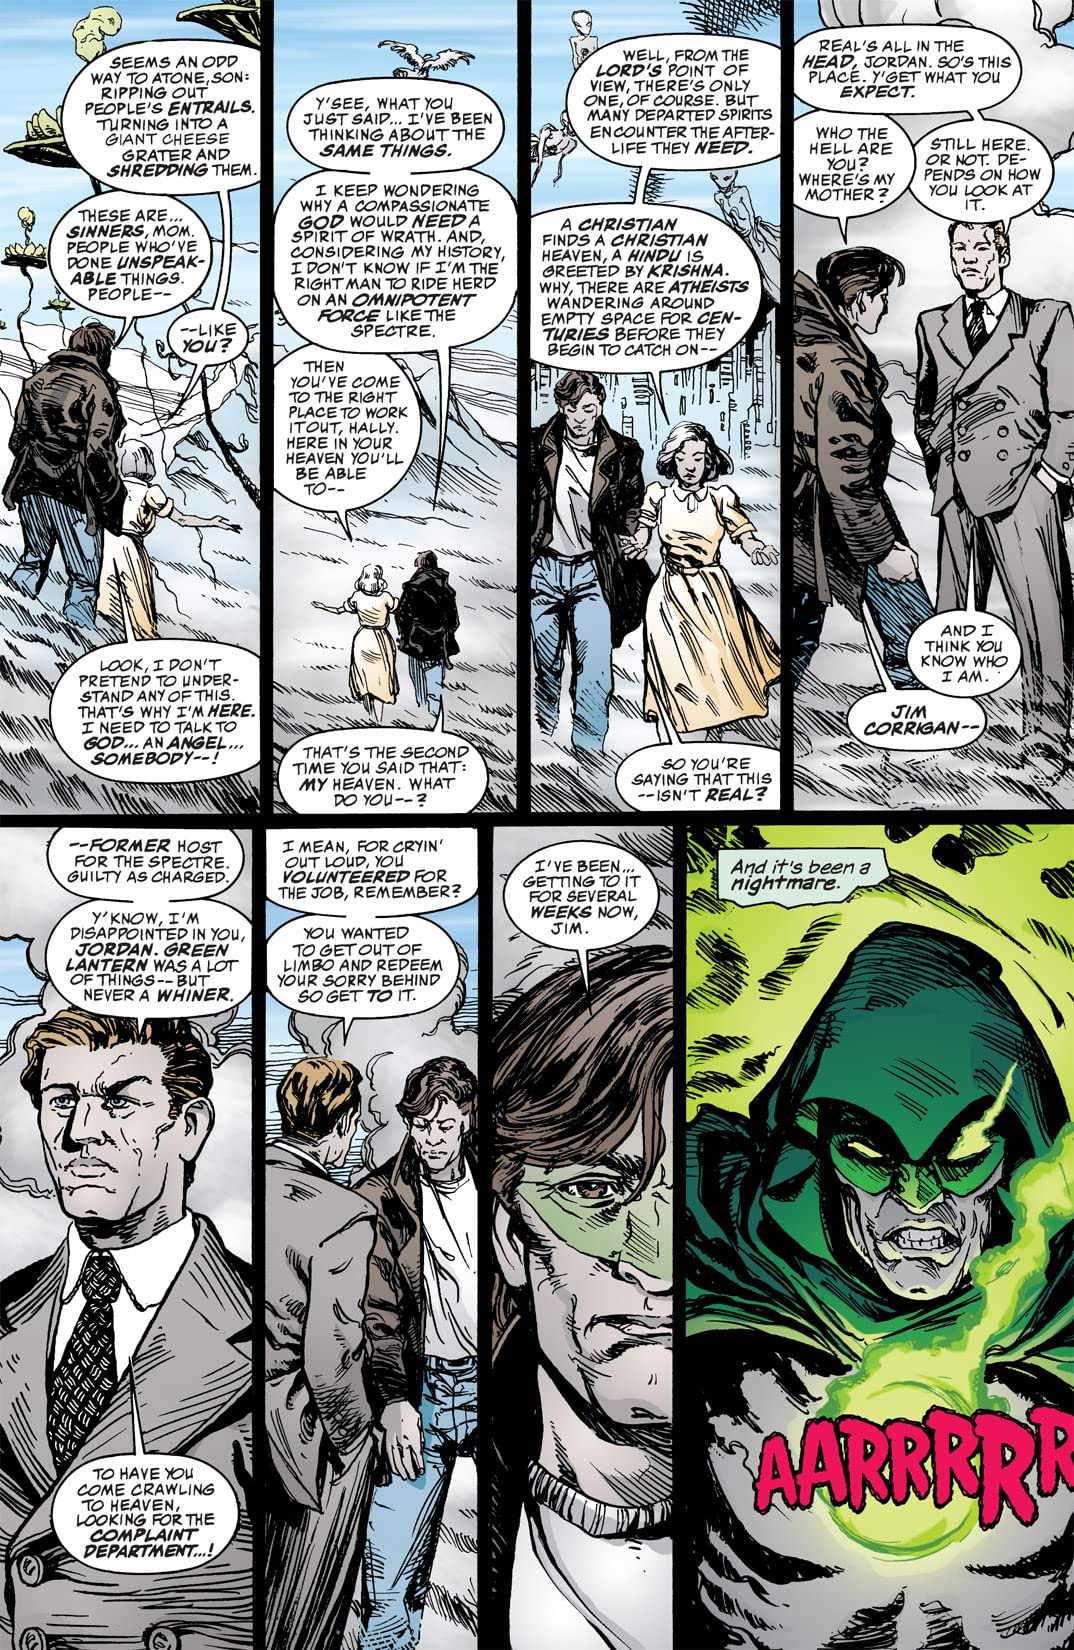 Legends of the DC Universe #33